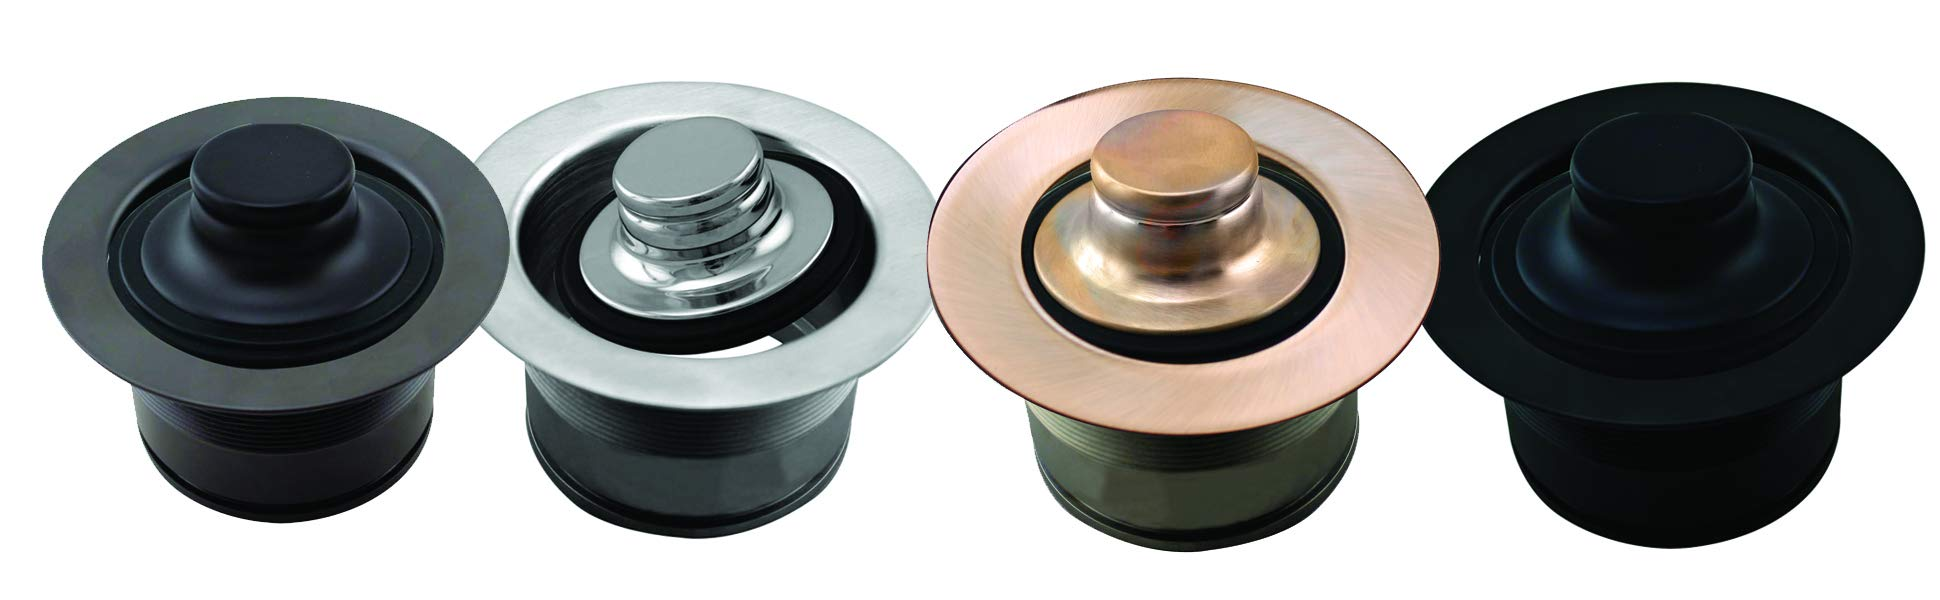 Westbrass D2105-62 EZ Mount Disposal Flange and Stopper, Matte Black by Westbrass (Image #4)